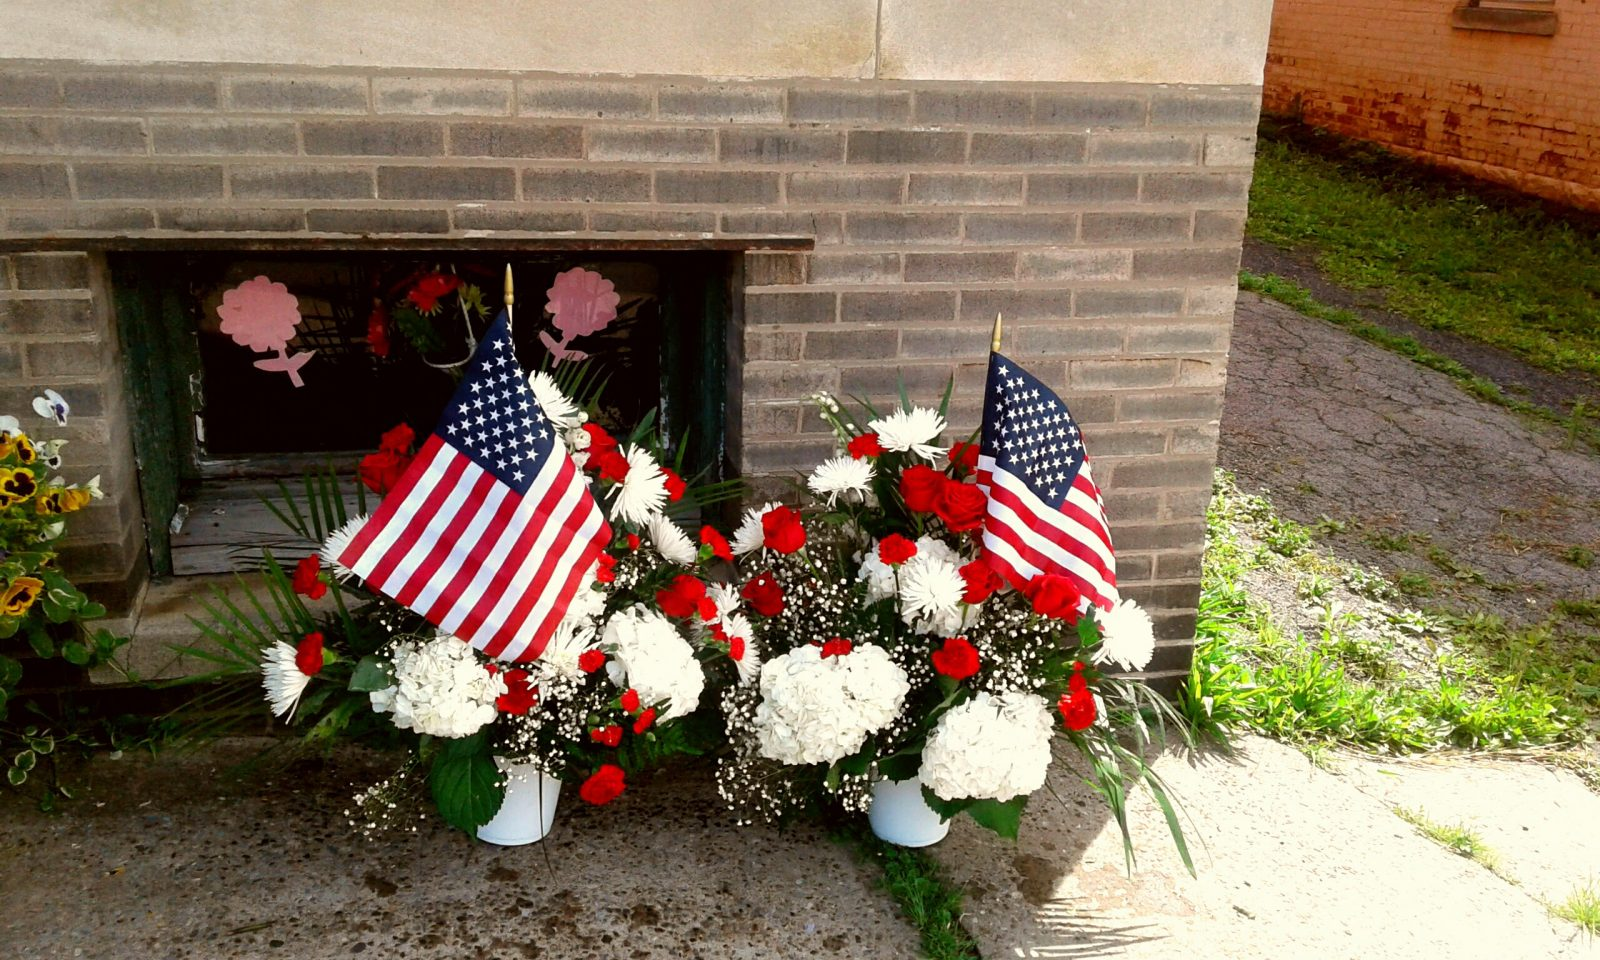 ROSE PETALS FLORIST FOR THE MOST FLOWERS IN FUNERAL FLOWERS ARRANGEMENTS,  LITTLE FALLS, NY FLOWER DELIVERY (315)823-7073